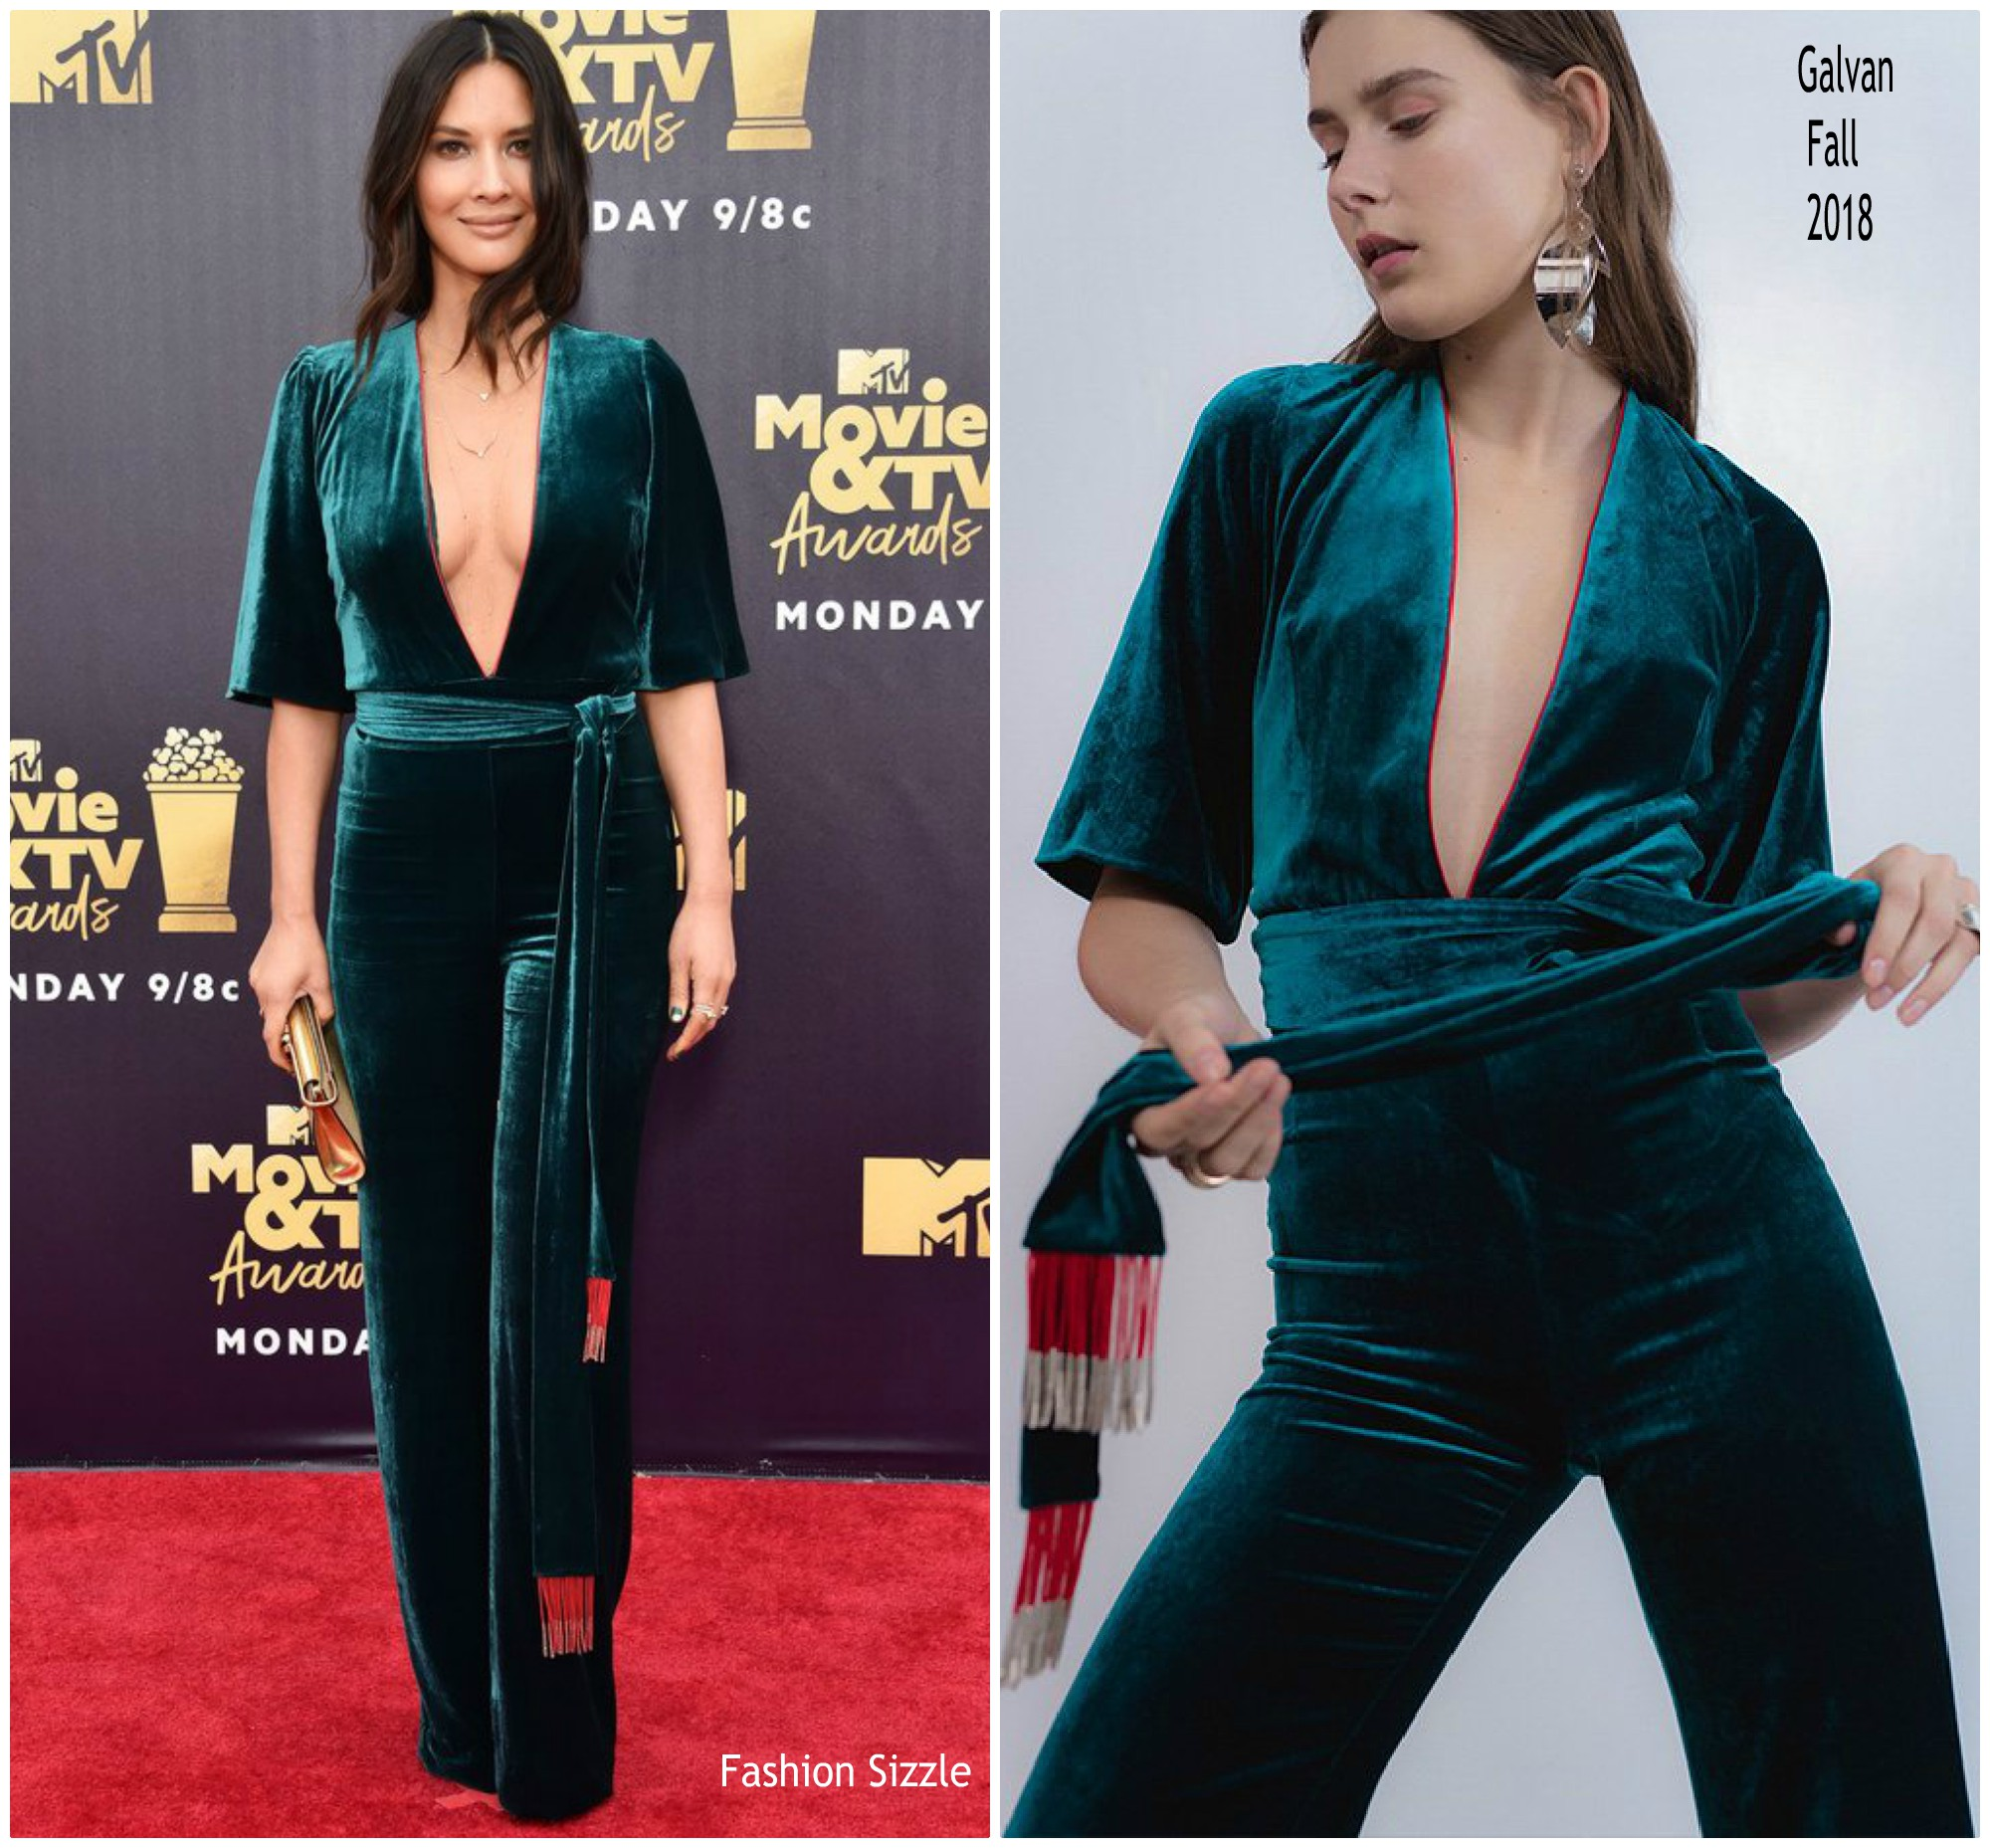 olivia-munn-in-galvan-2018-mtv-movie-tv-awards